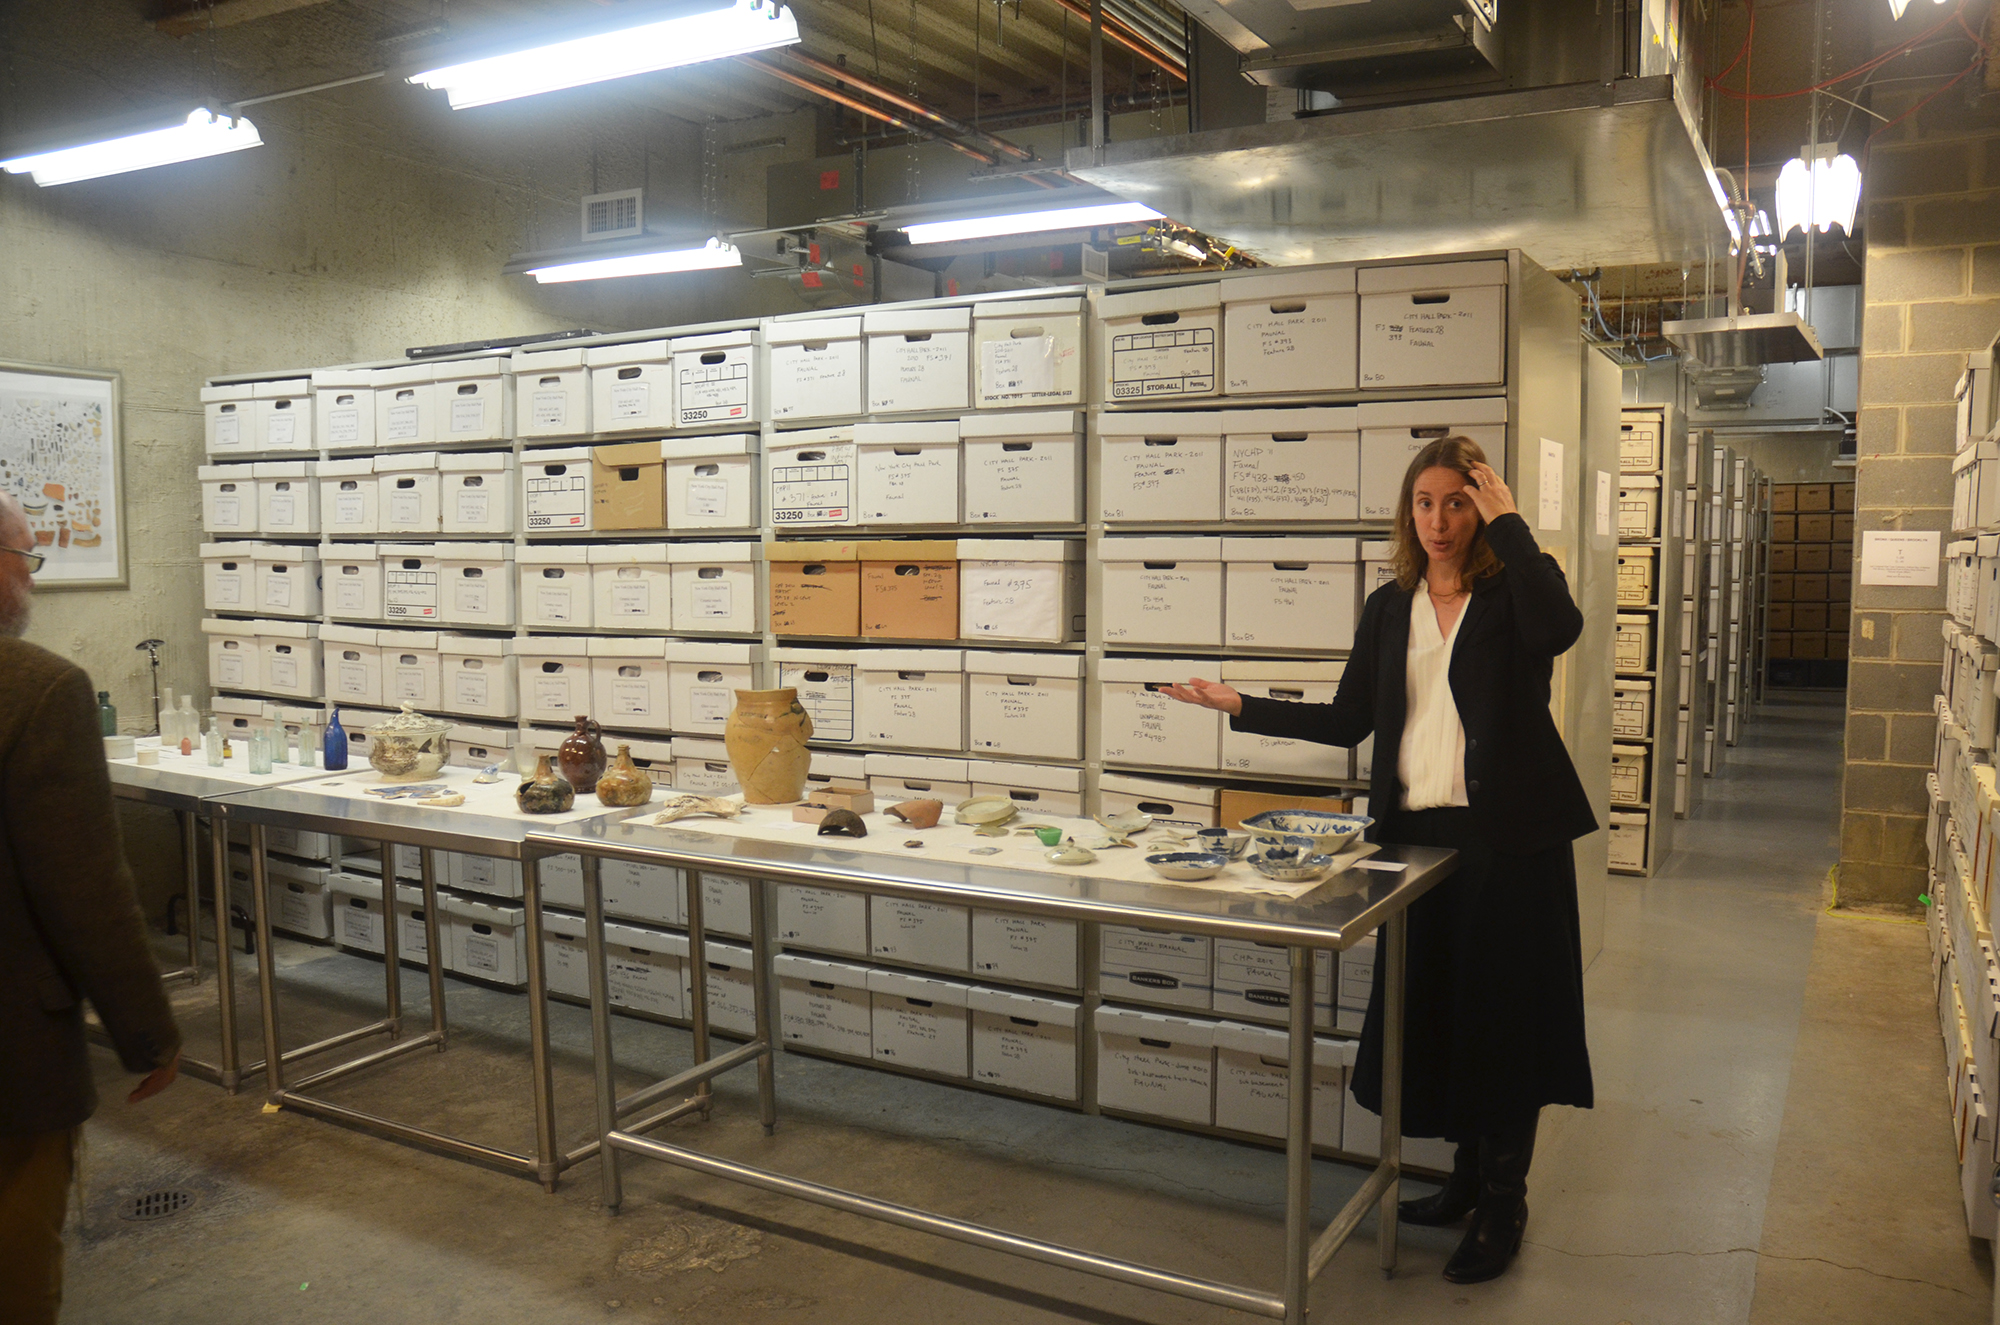 Jessica MacLean, urban archaeologist for the Landmarks Preservation Commission, welcomes people to the NYC Archaeological Repository Nan A. Rotshschild Research Center. All photos by the author unless noted